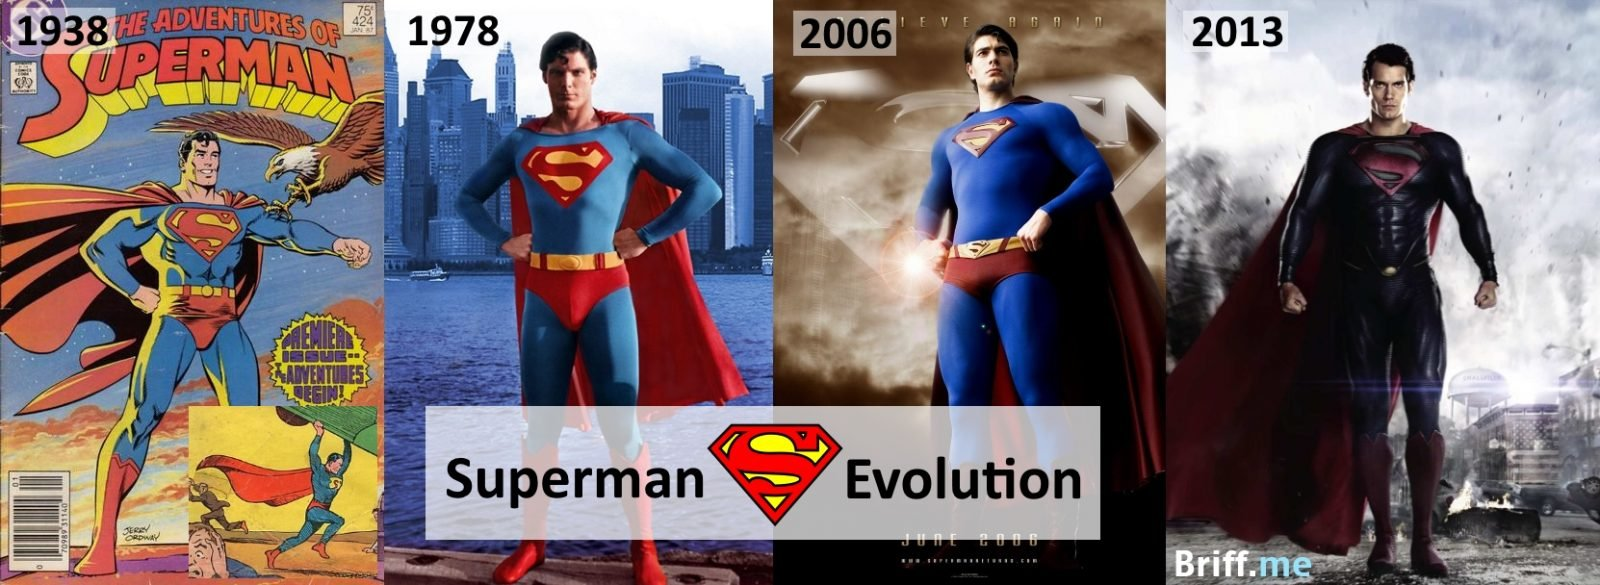 Superman Superhero Movies Superhero Evolution Superman